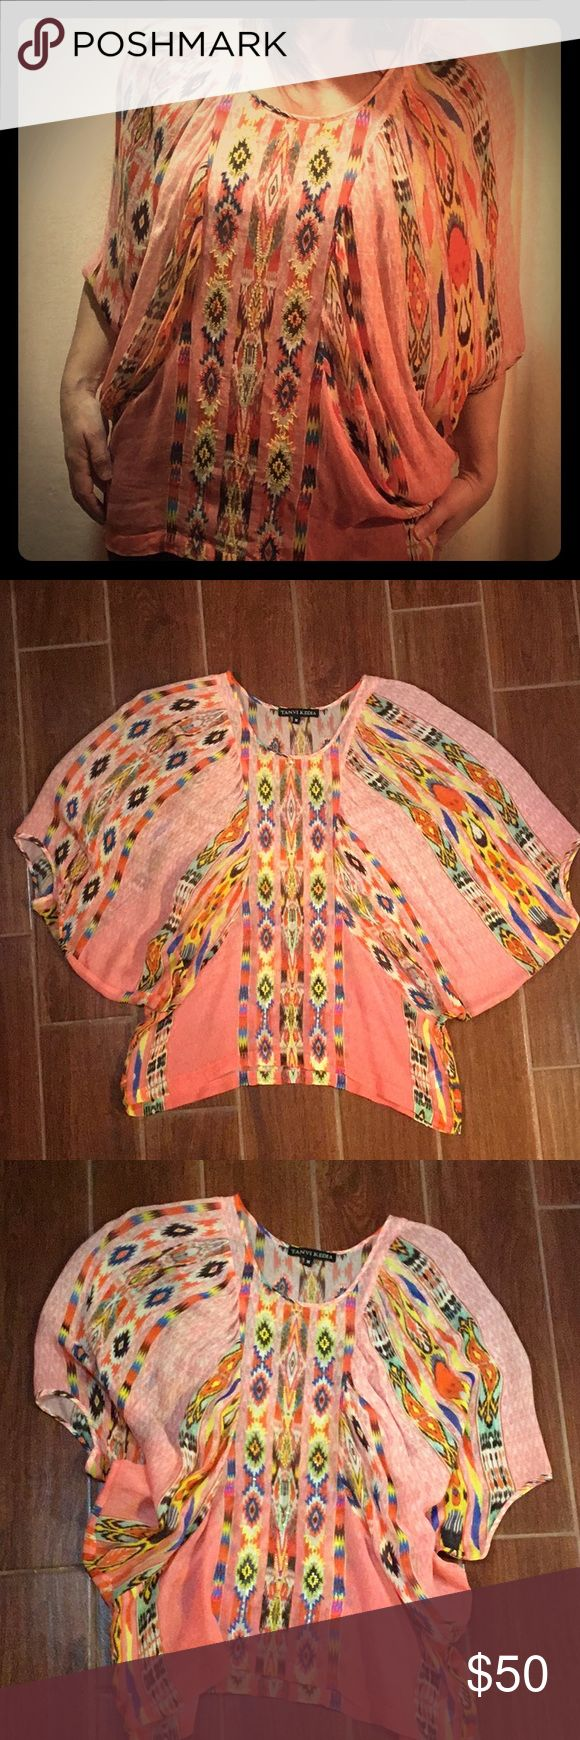 Beaded Anthropologie Tanvi Kedia Top SIze Medium Beaded Anthropologie Tanvi Kedia Bohemian Style Blouse. In great condition! This blouse flows and definitely has a bohemian vibe with beautiful bead embellishments down the front. Size medium medium and 100% Rayon. Bundle up!  Offers always welcome! Anthropologie Tops Blouses